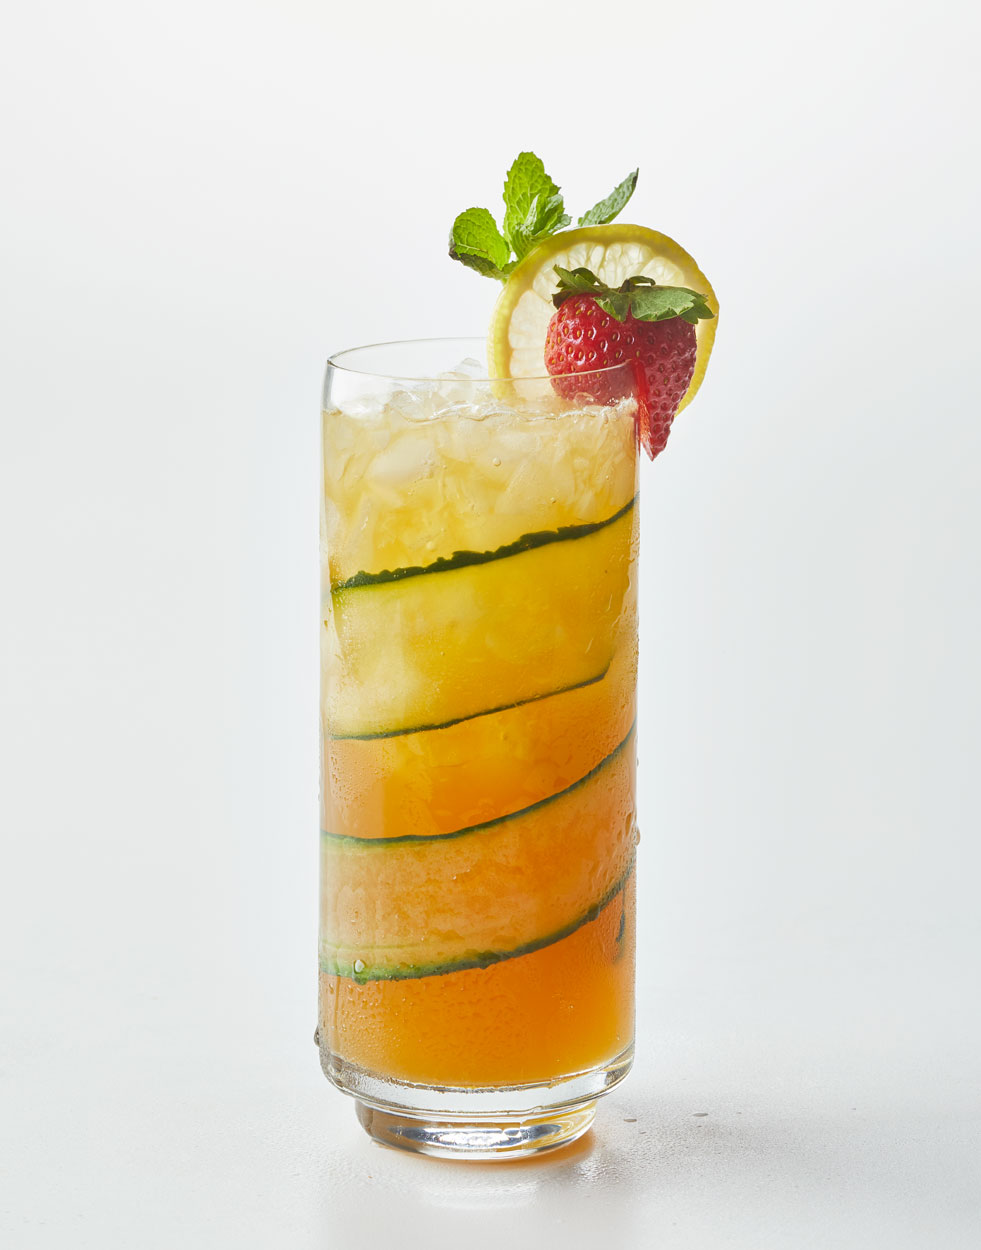 Pimm's Cup with cucumber simple syrup